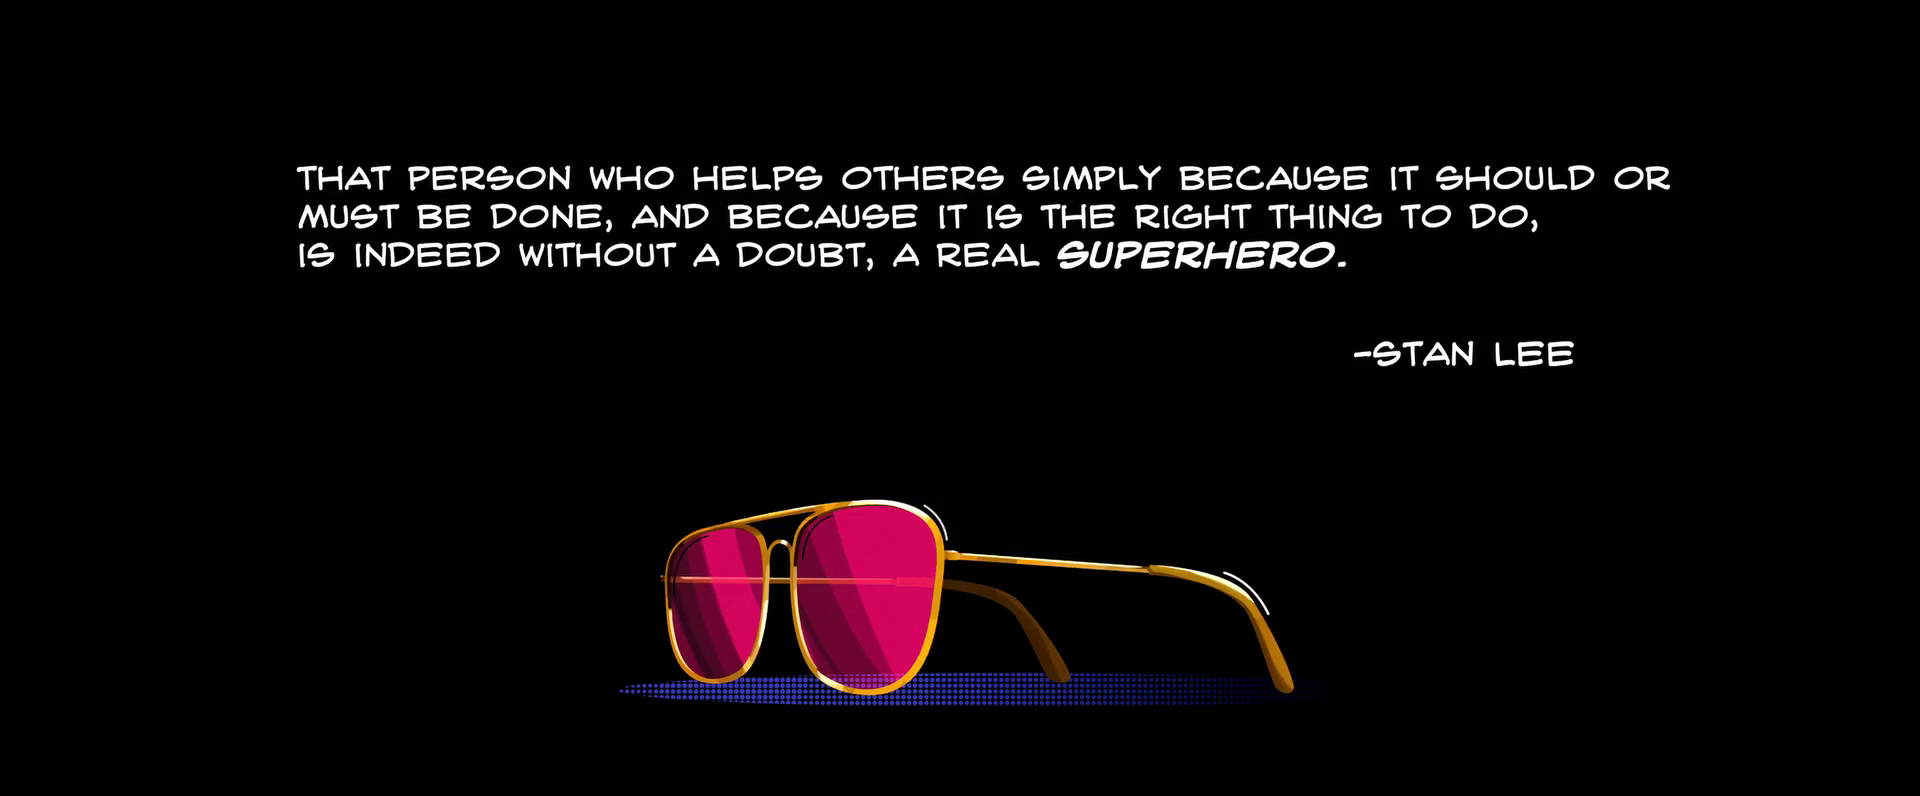 [Image] Stan the Man on Superheroes